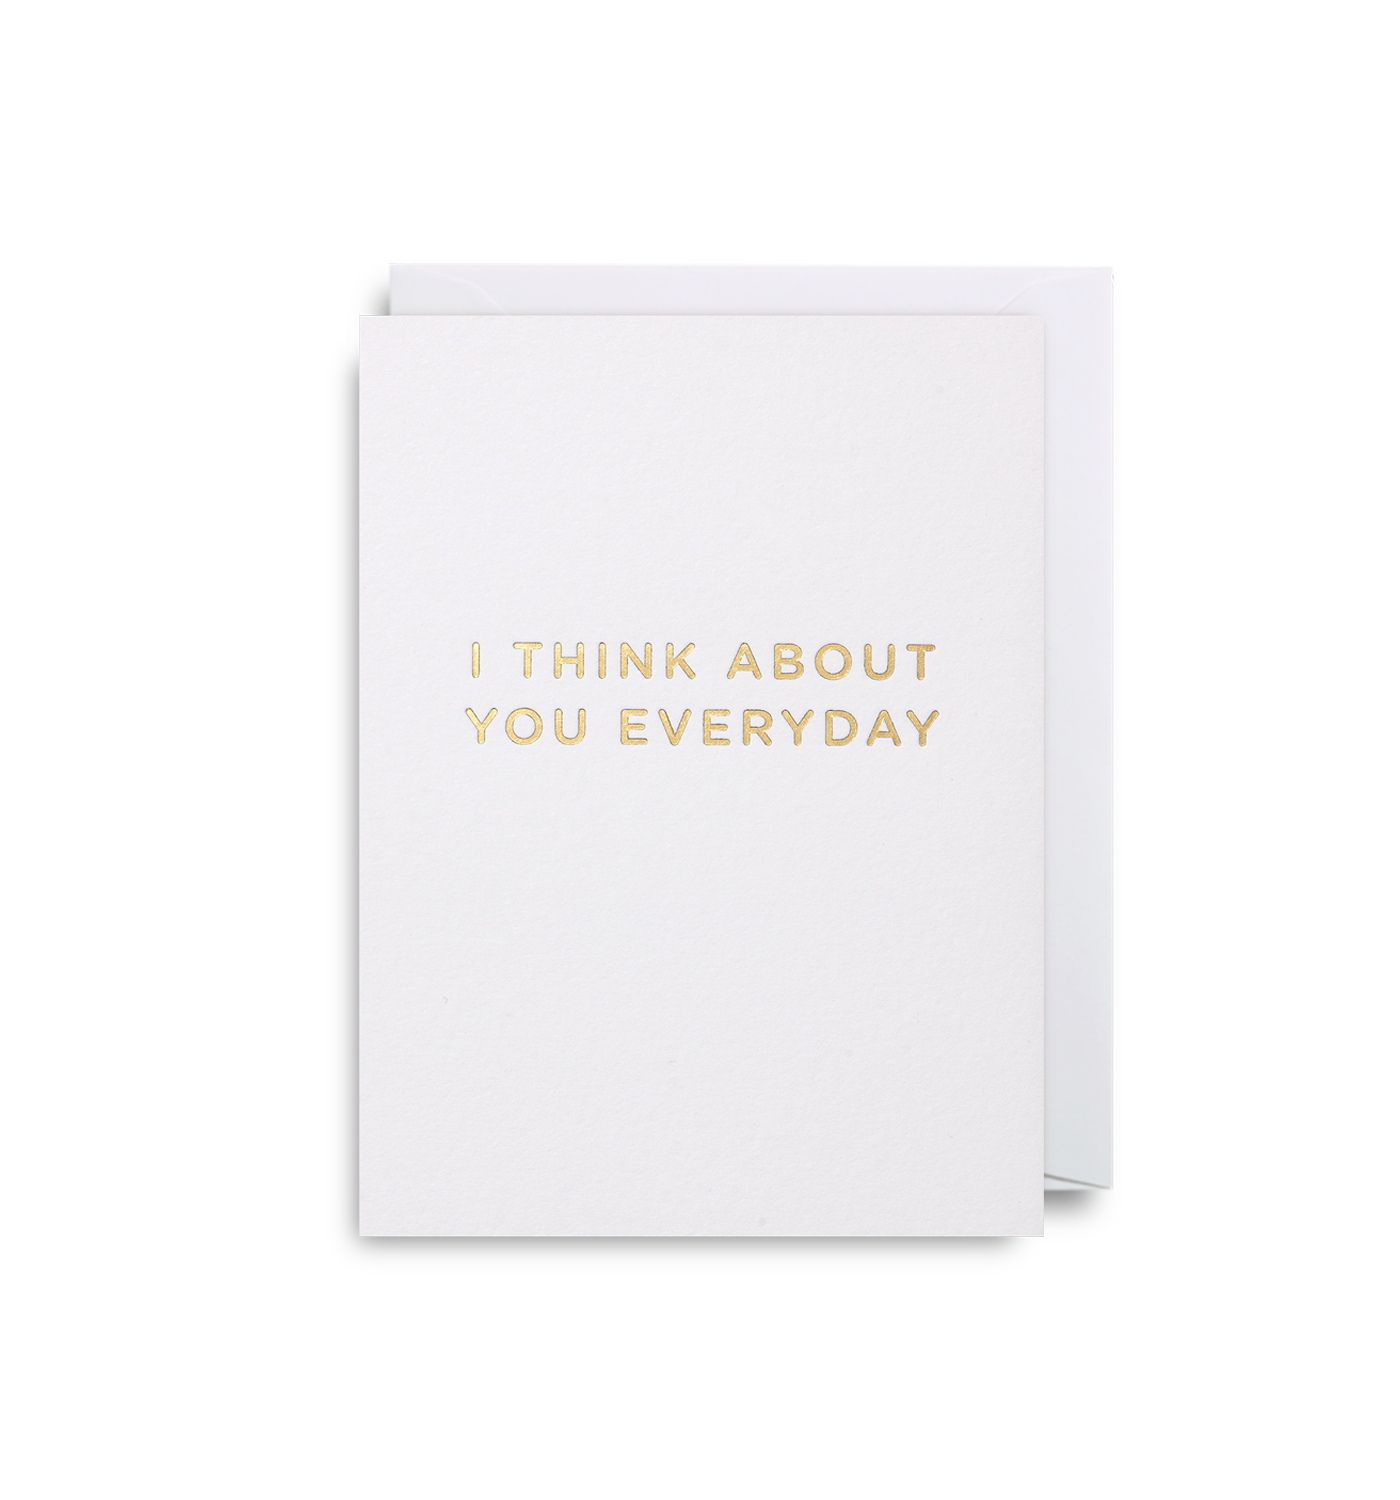 I Think About You Everyday Mini Card By Cherished Lagom Design